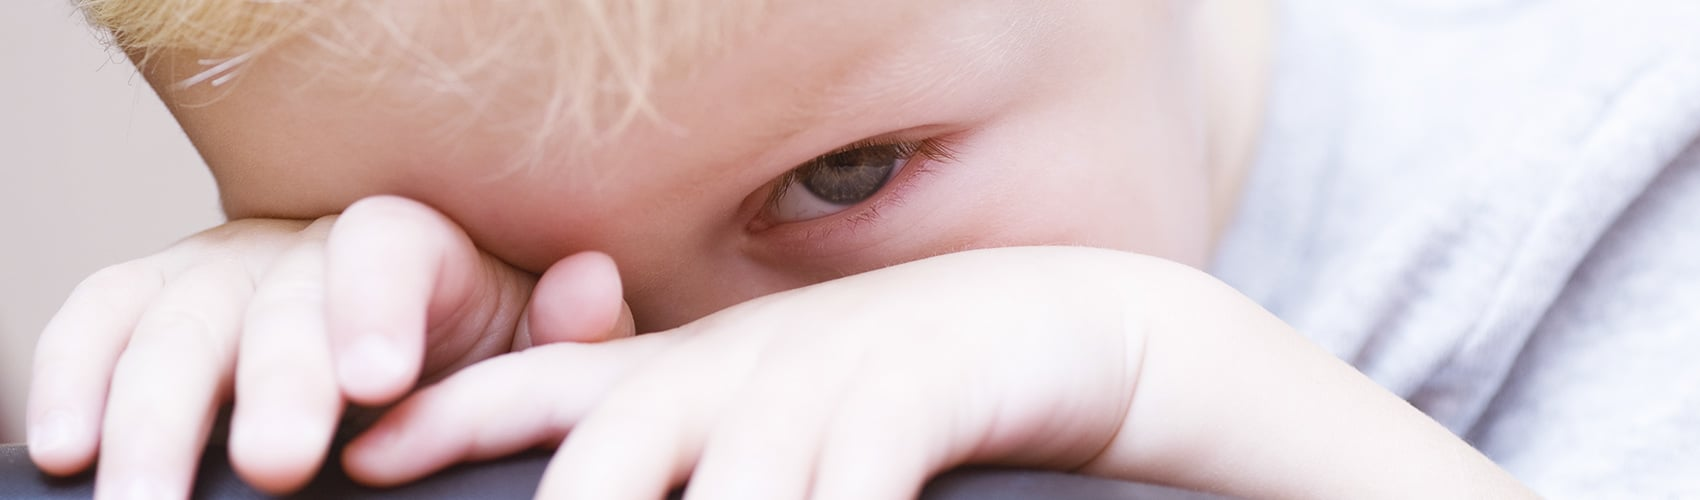 Children and shyness: how to deal with a shy and timid toddler